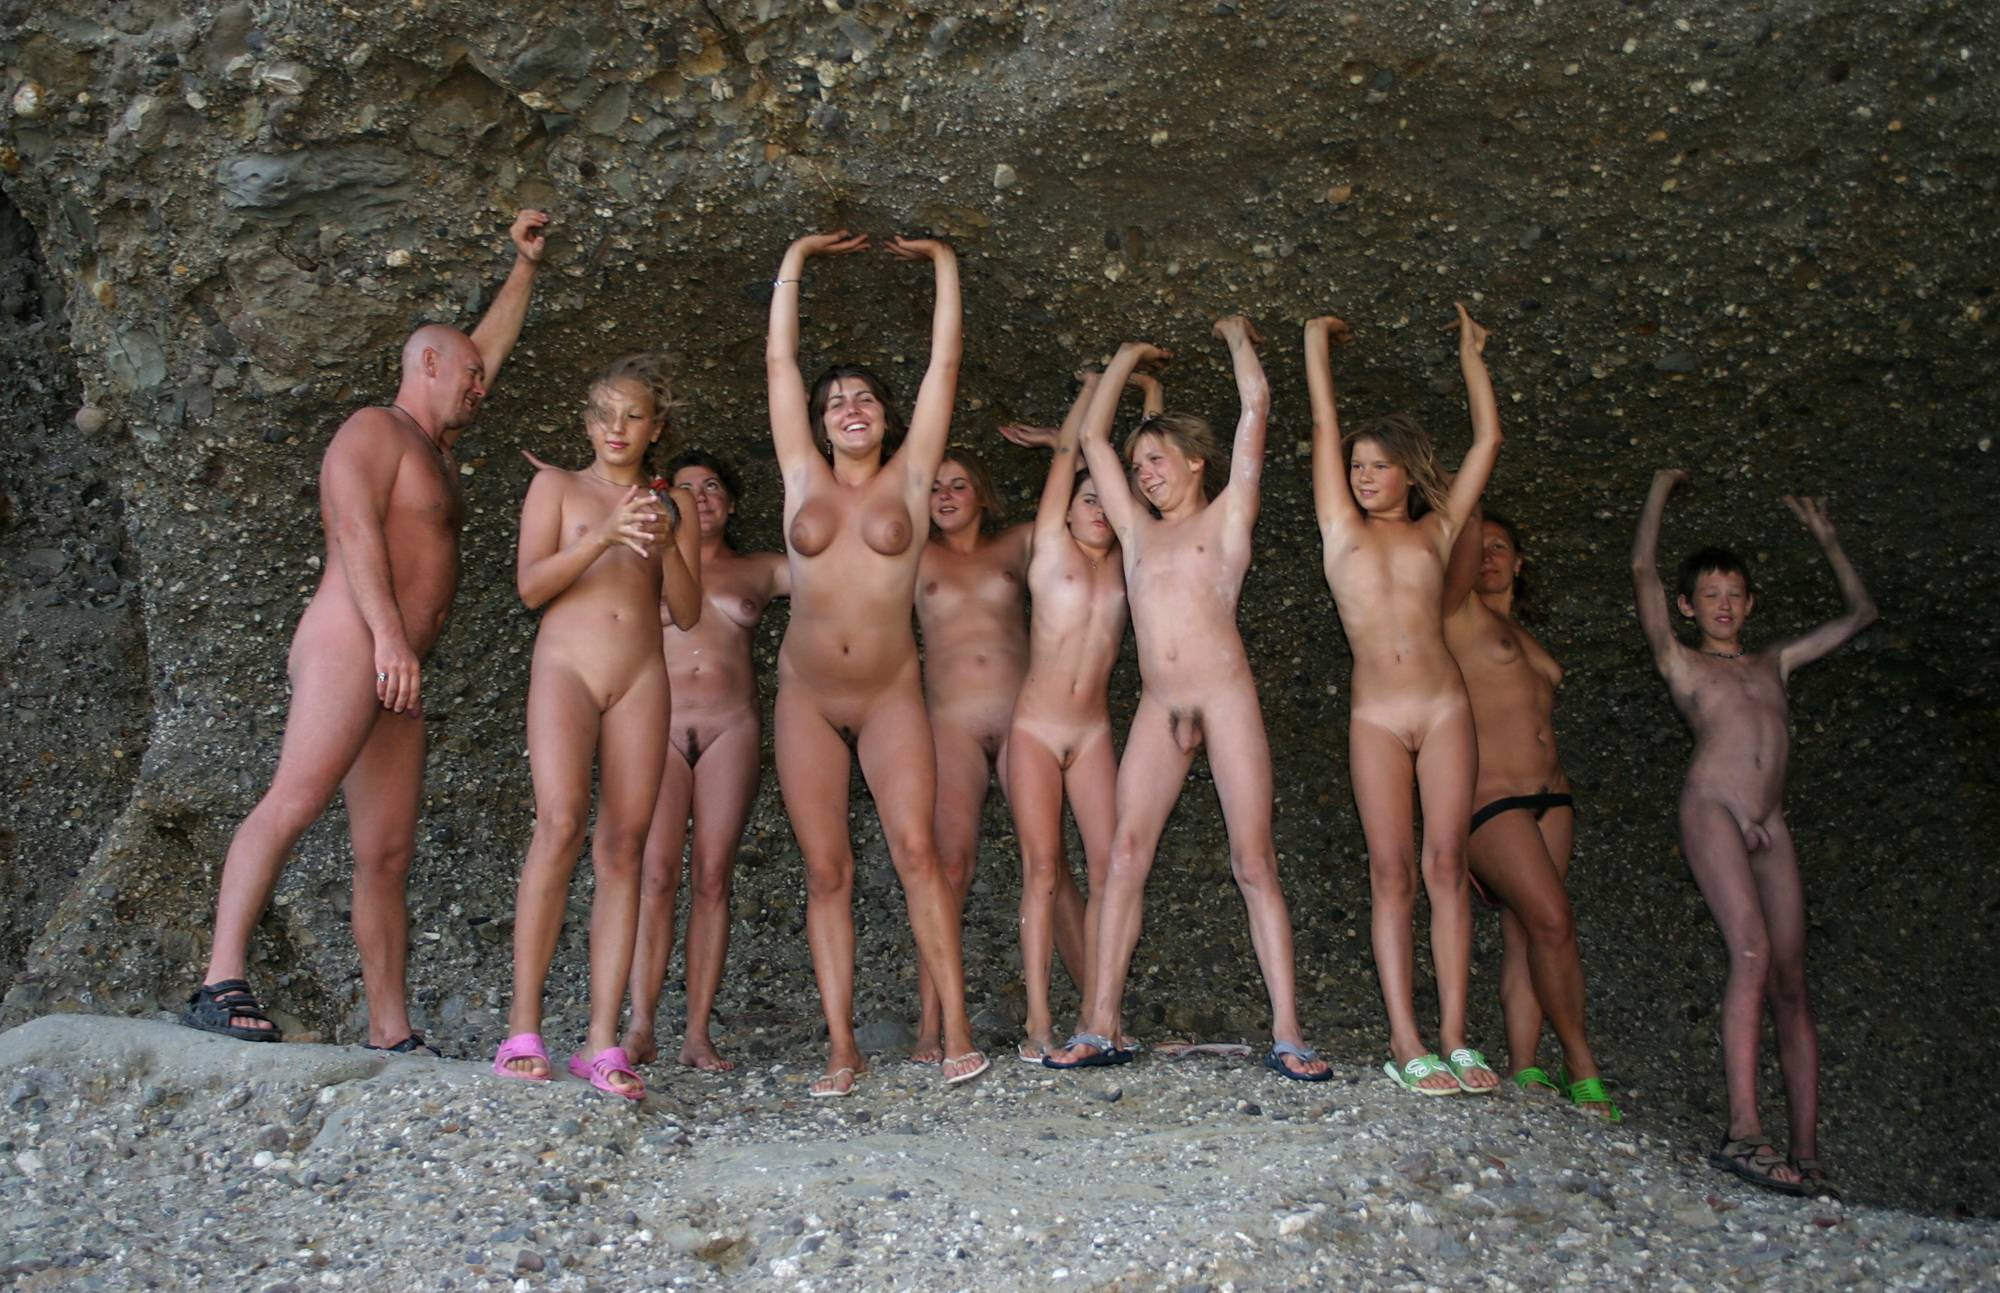 Nudist Gallery Family Cave Photo Line-Up - 1